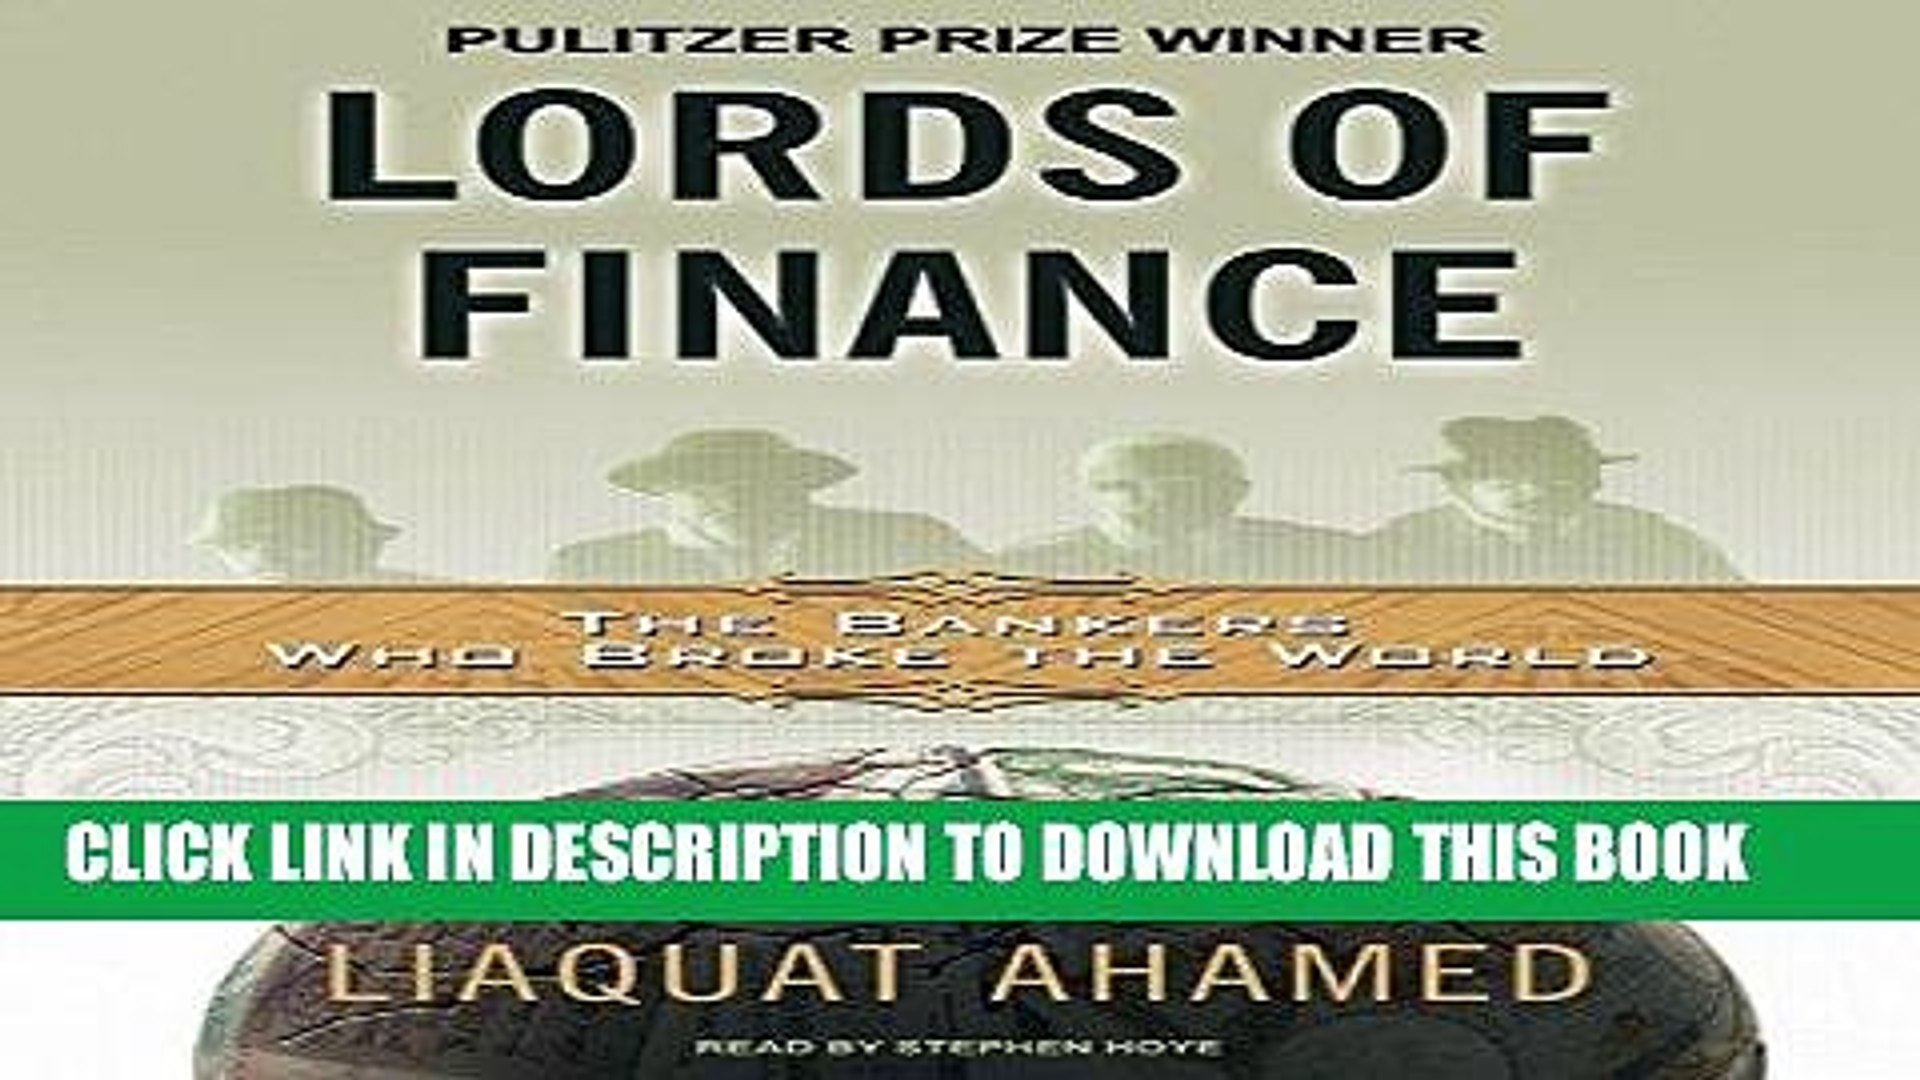 Ebook Lords of Finance: The Bankers Who Broke the World [MP3 AUDIO] [UNABRIDGED] (MP3 CD) Free Read